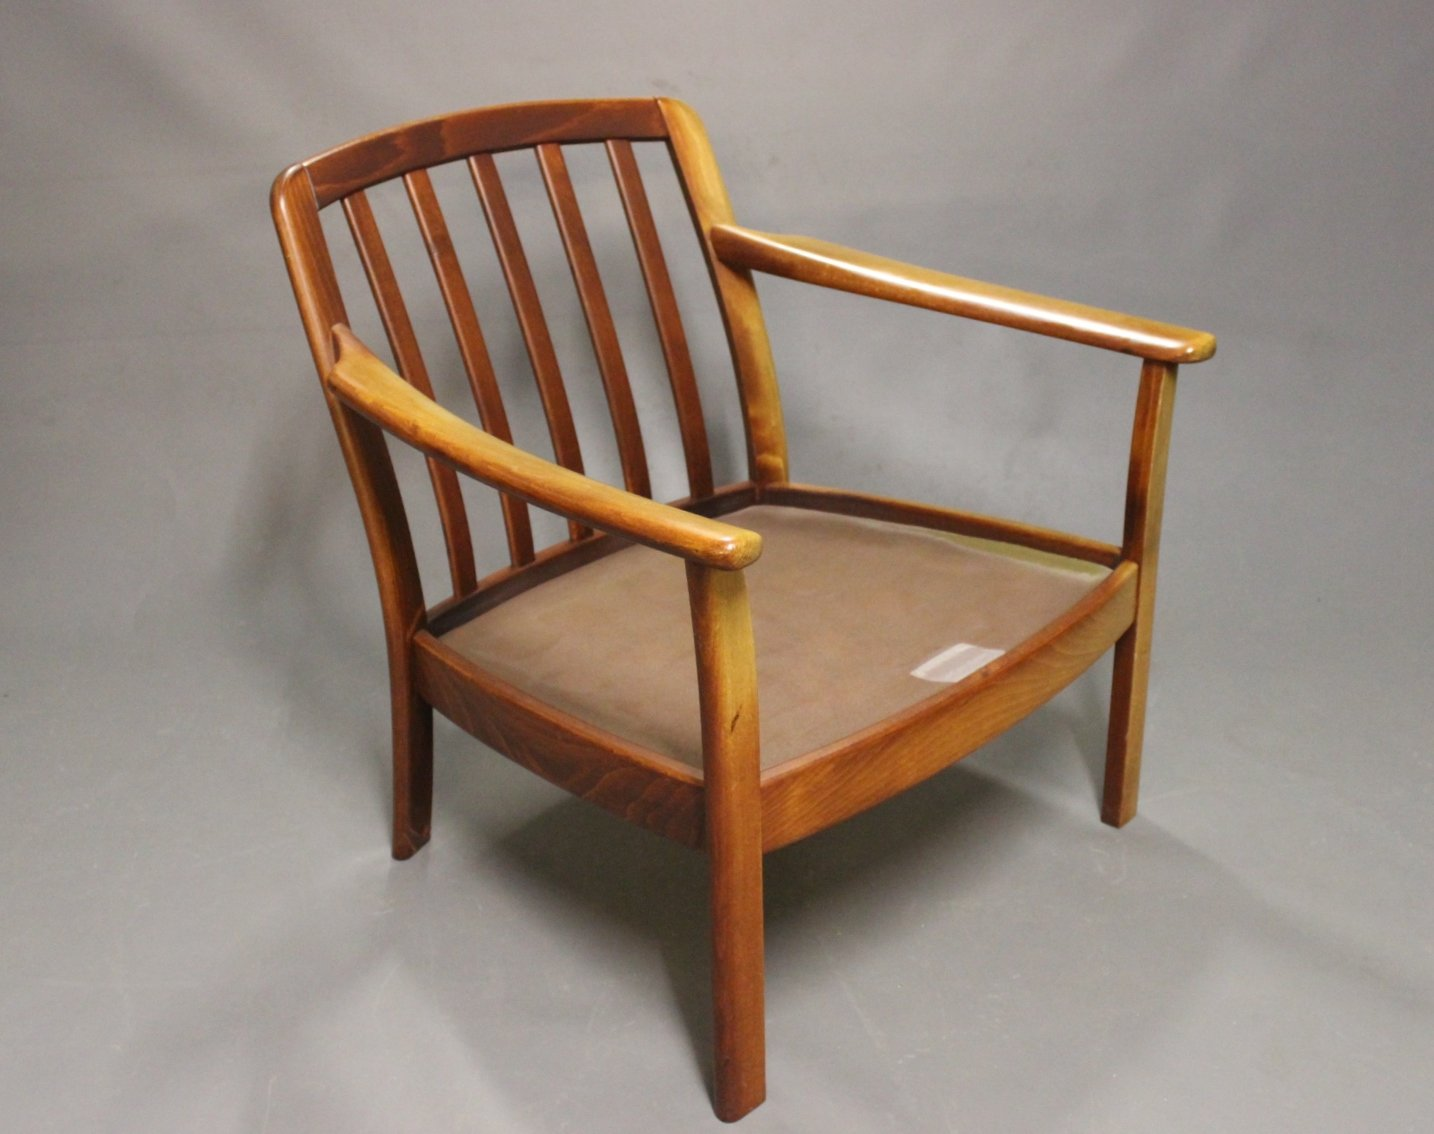 Danish Wooden Easy Chairs 1960s Set of 2 for sale at Pamono